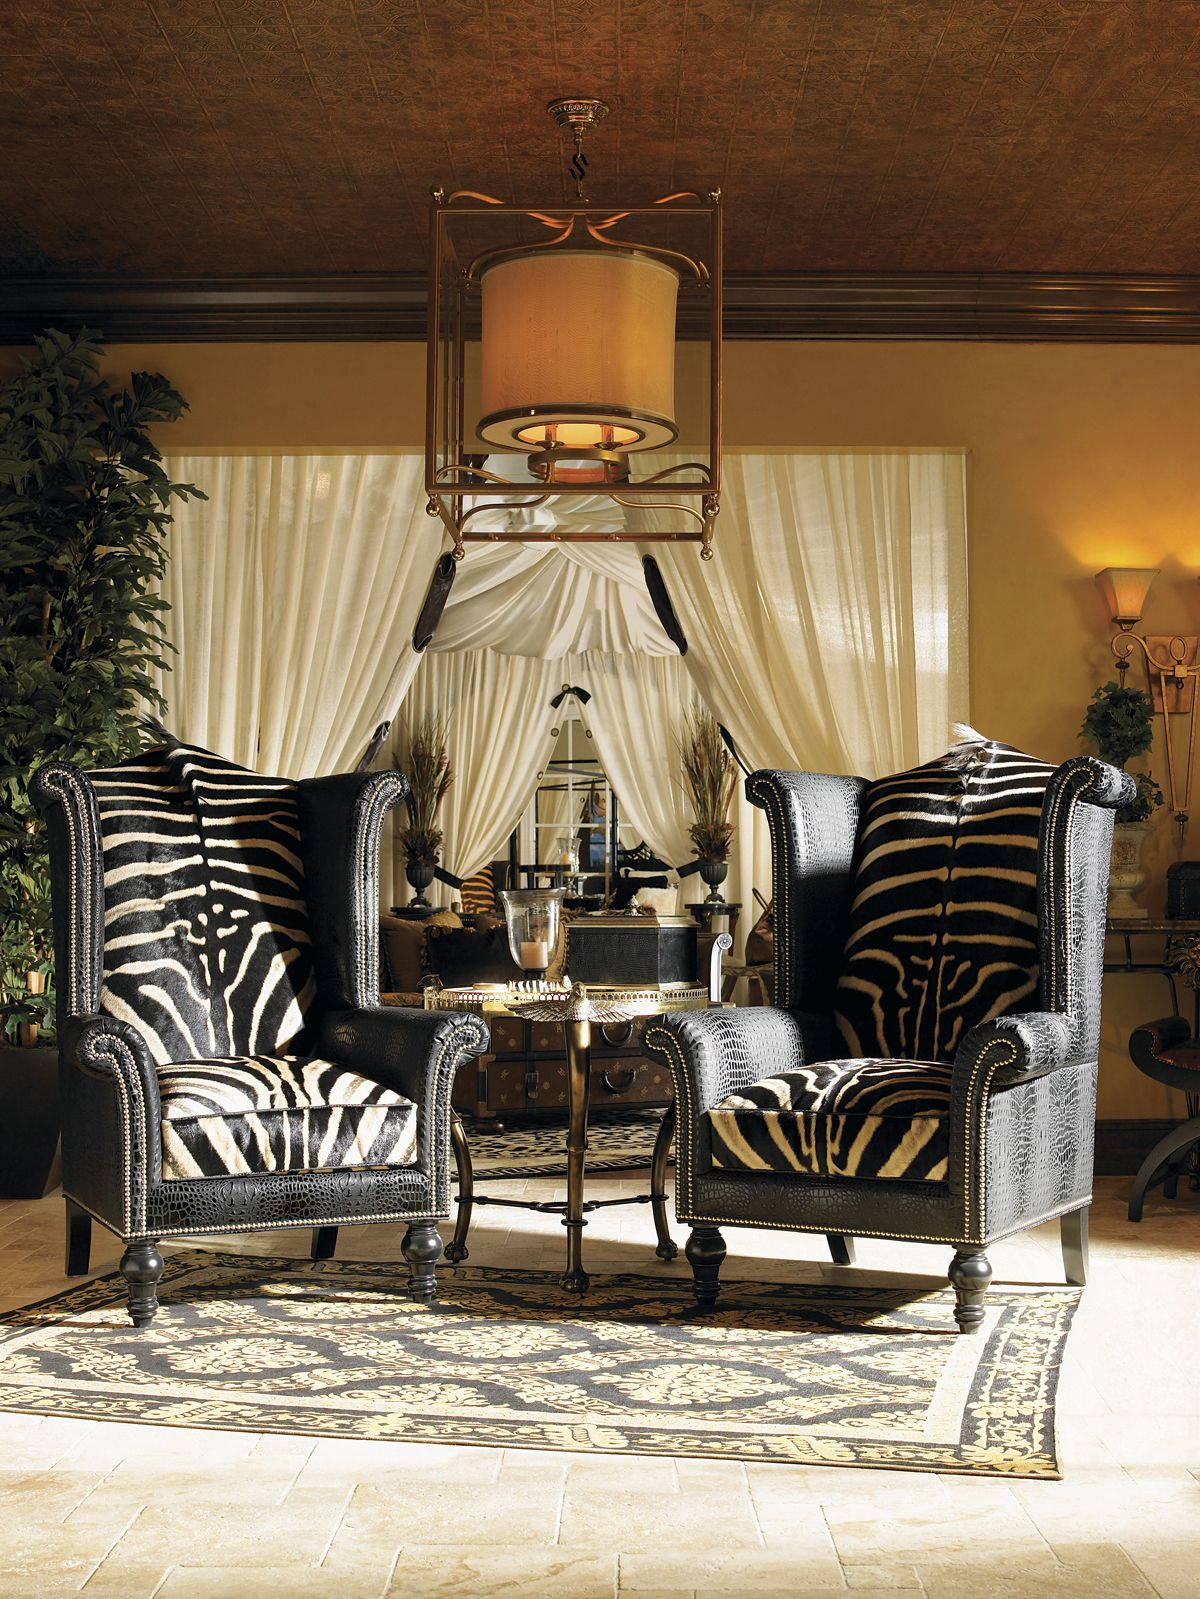 Decorating With The Wingback Chair......It's Trendy Again